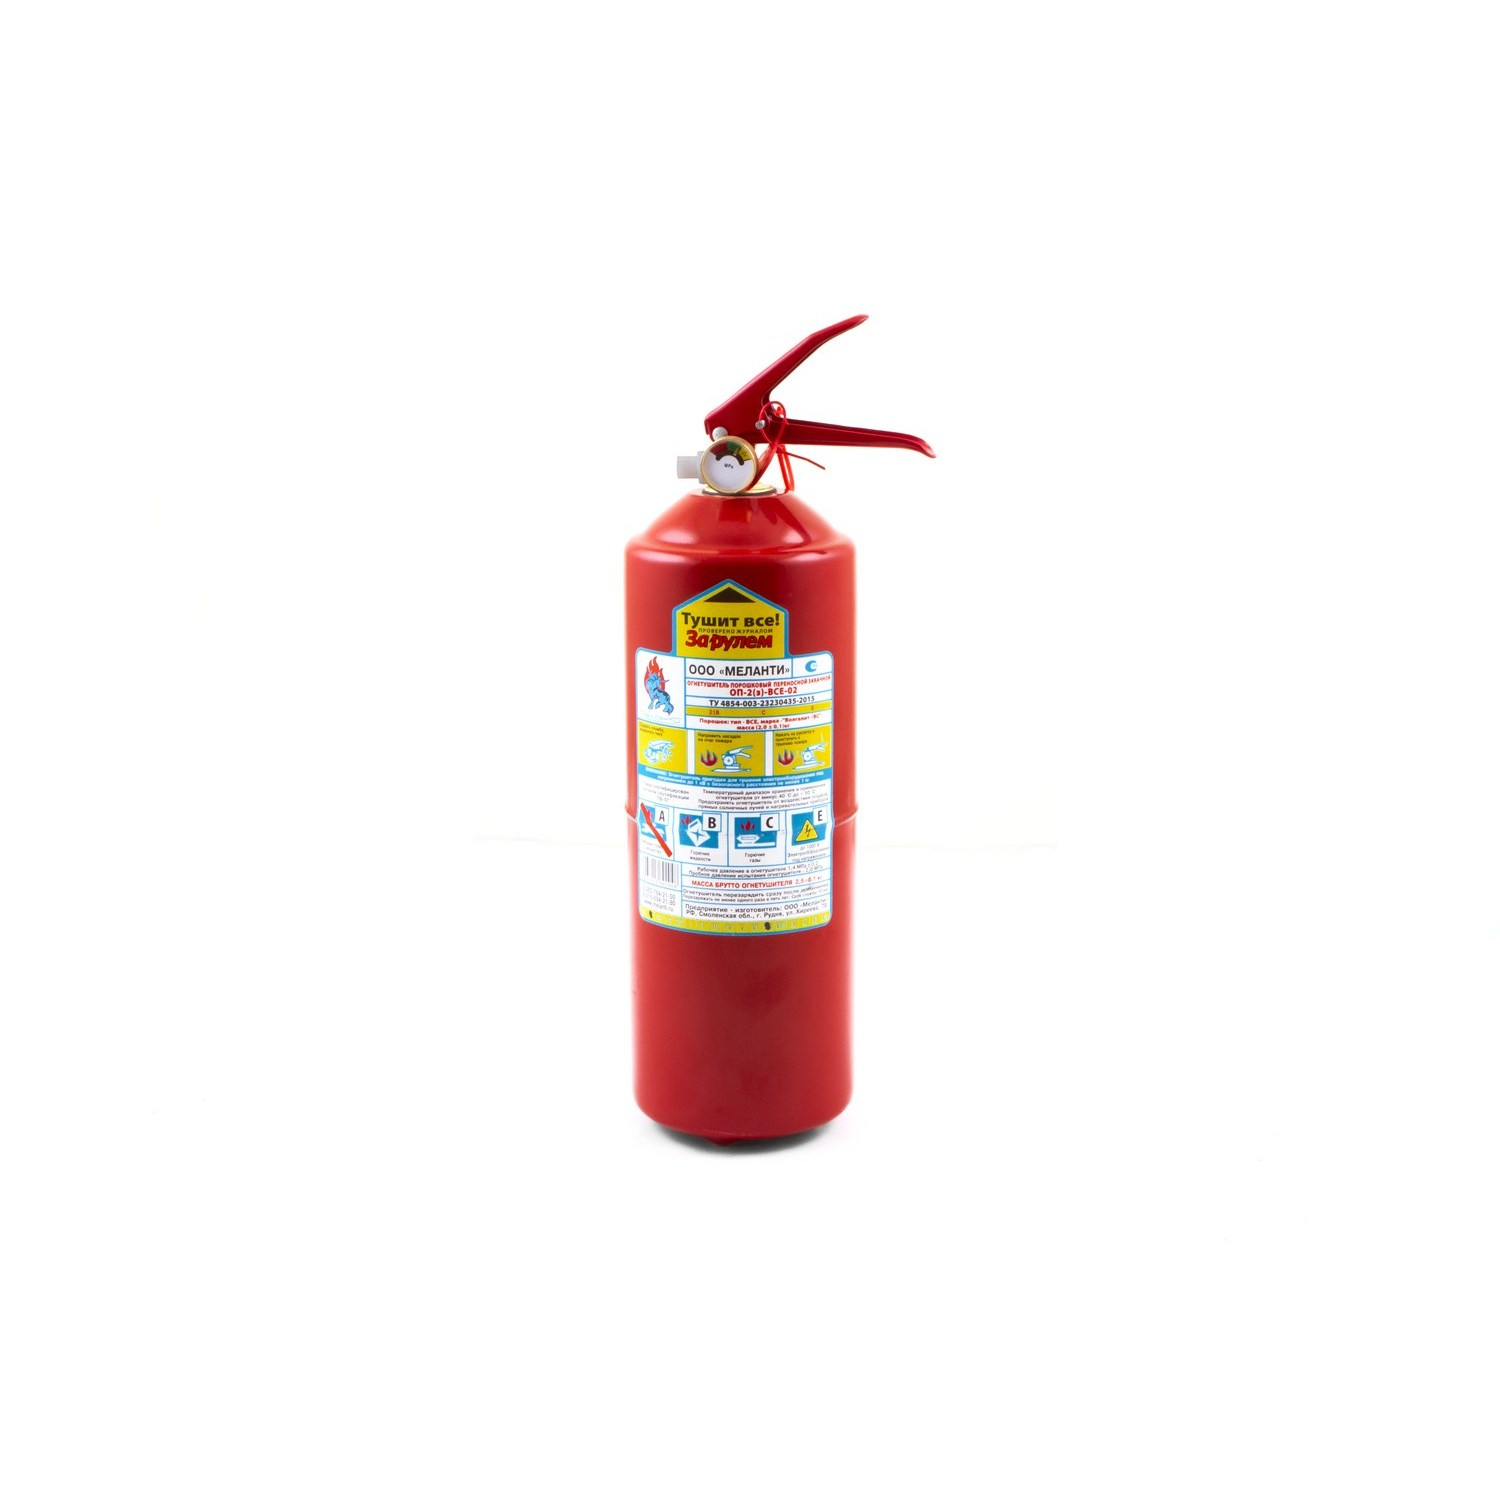 Fire Extinguisher ОП-2 (Z) AND All (меланти)